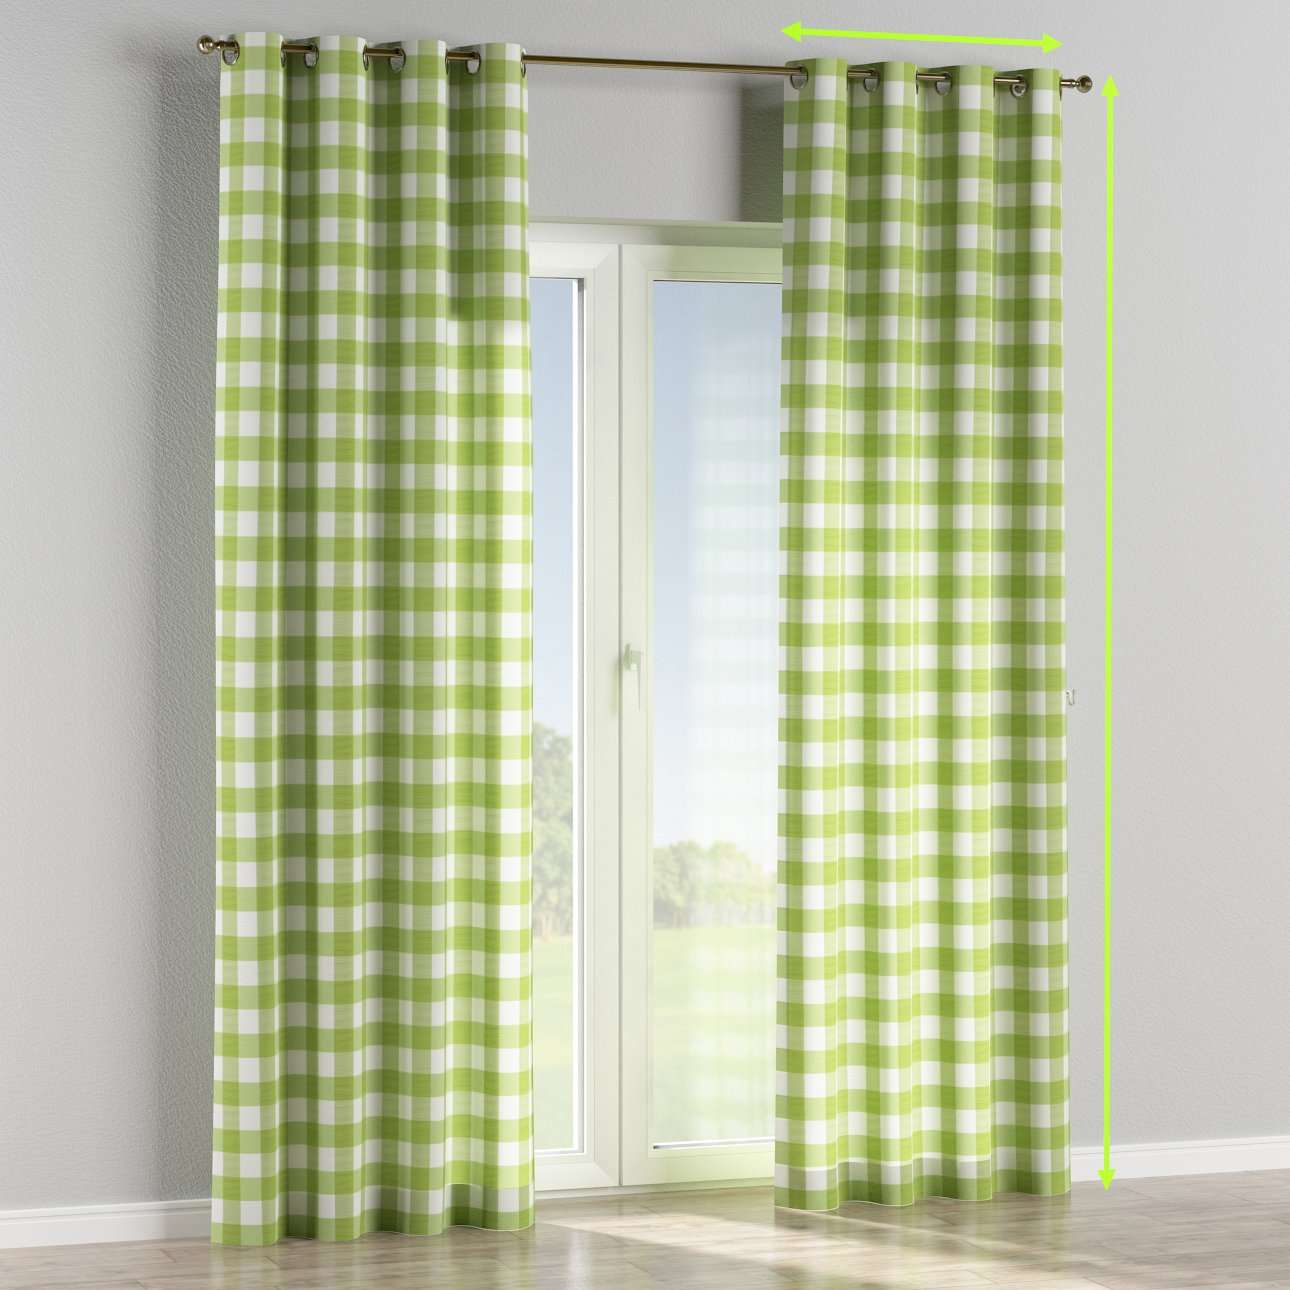 Eyelet lined curtains in collection Quadro, fabric: 136-36